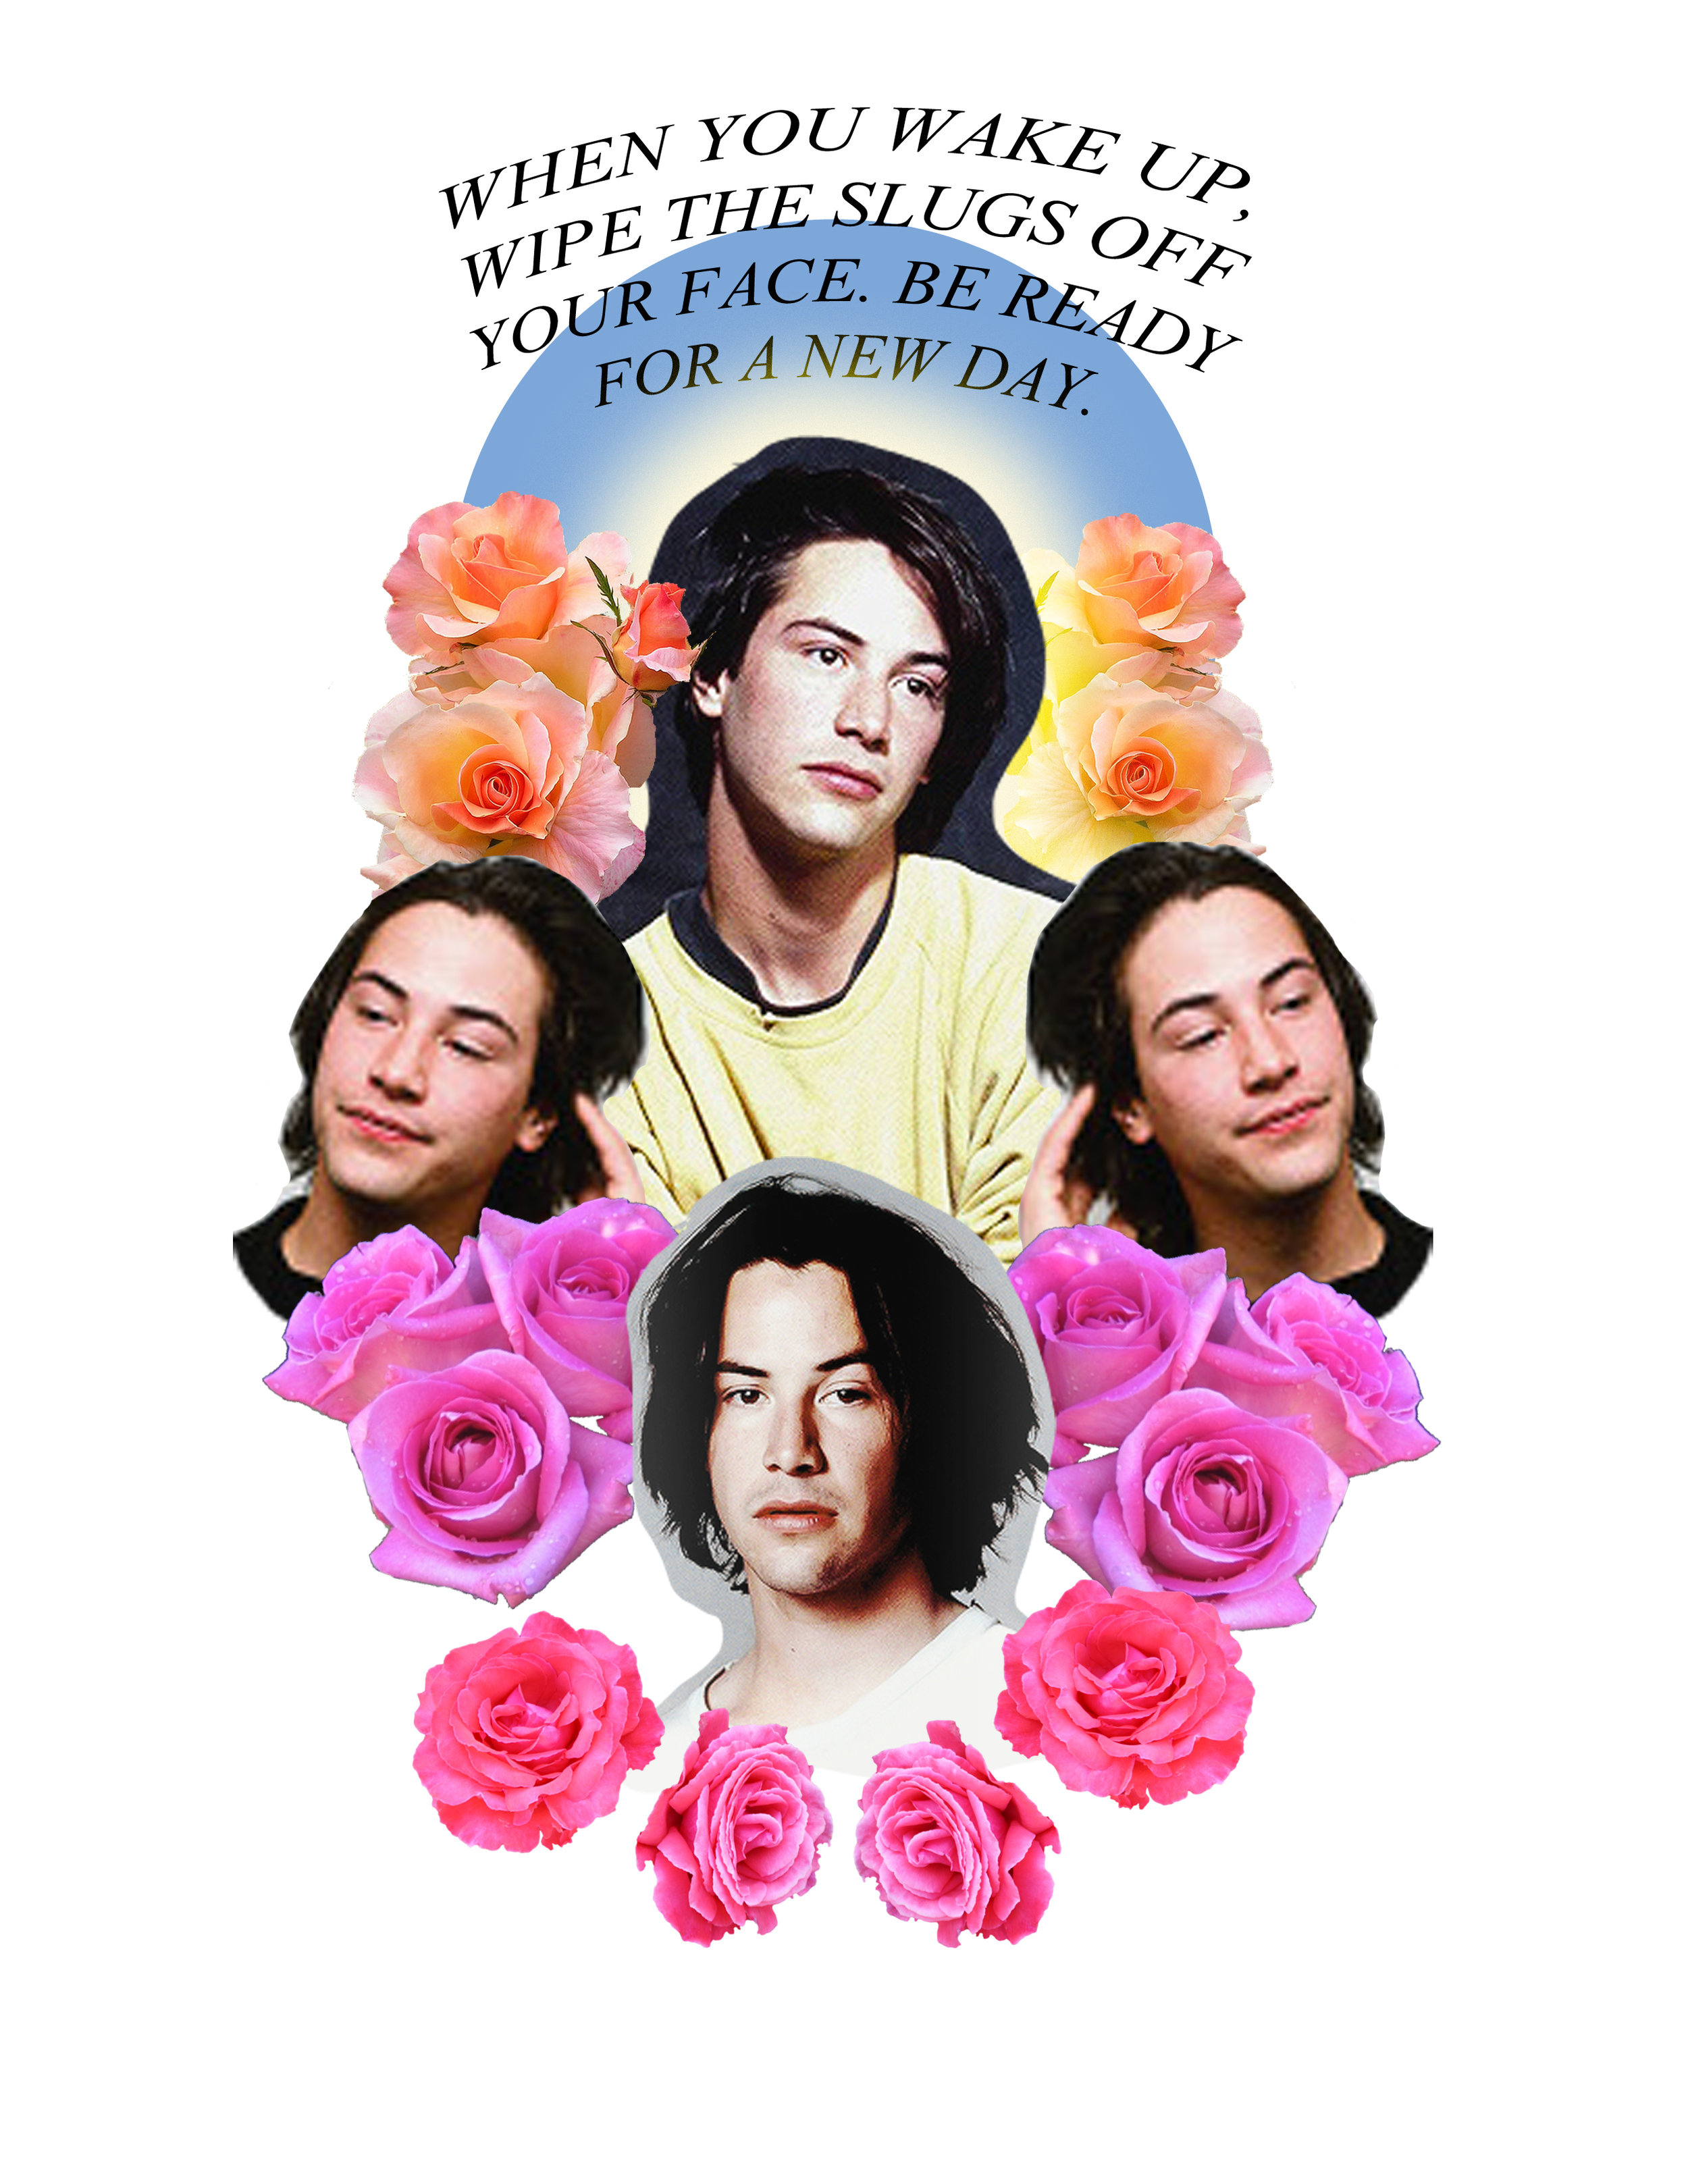 Saint Keanu collage with quote from My Own Private Idaho